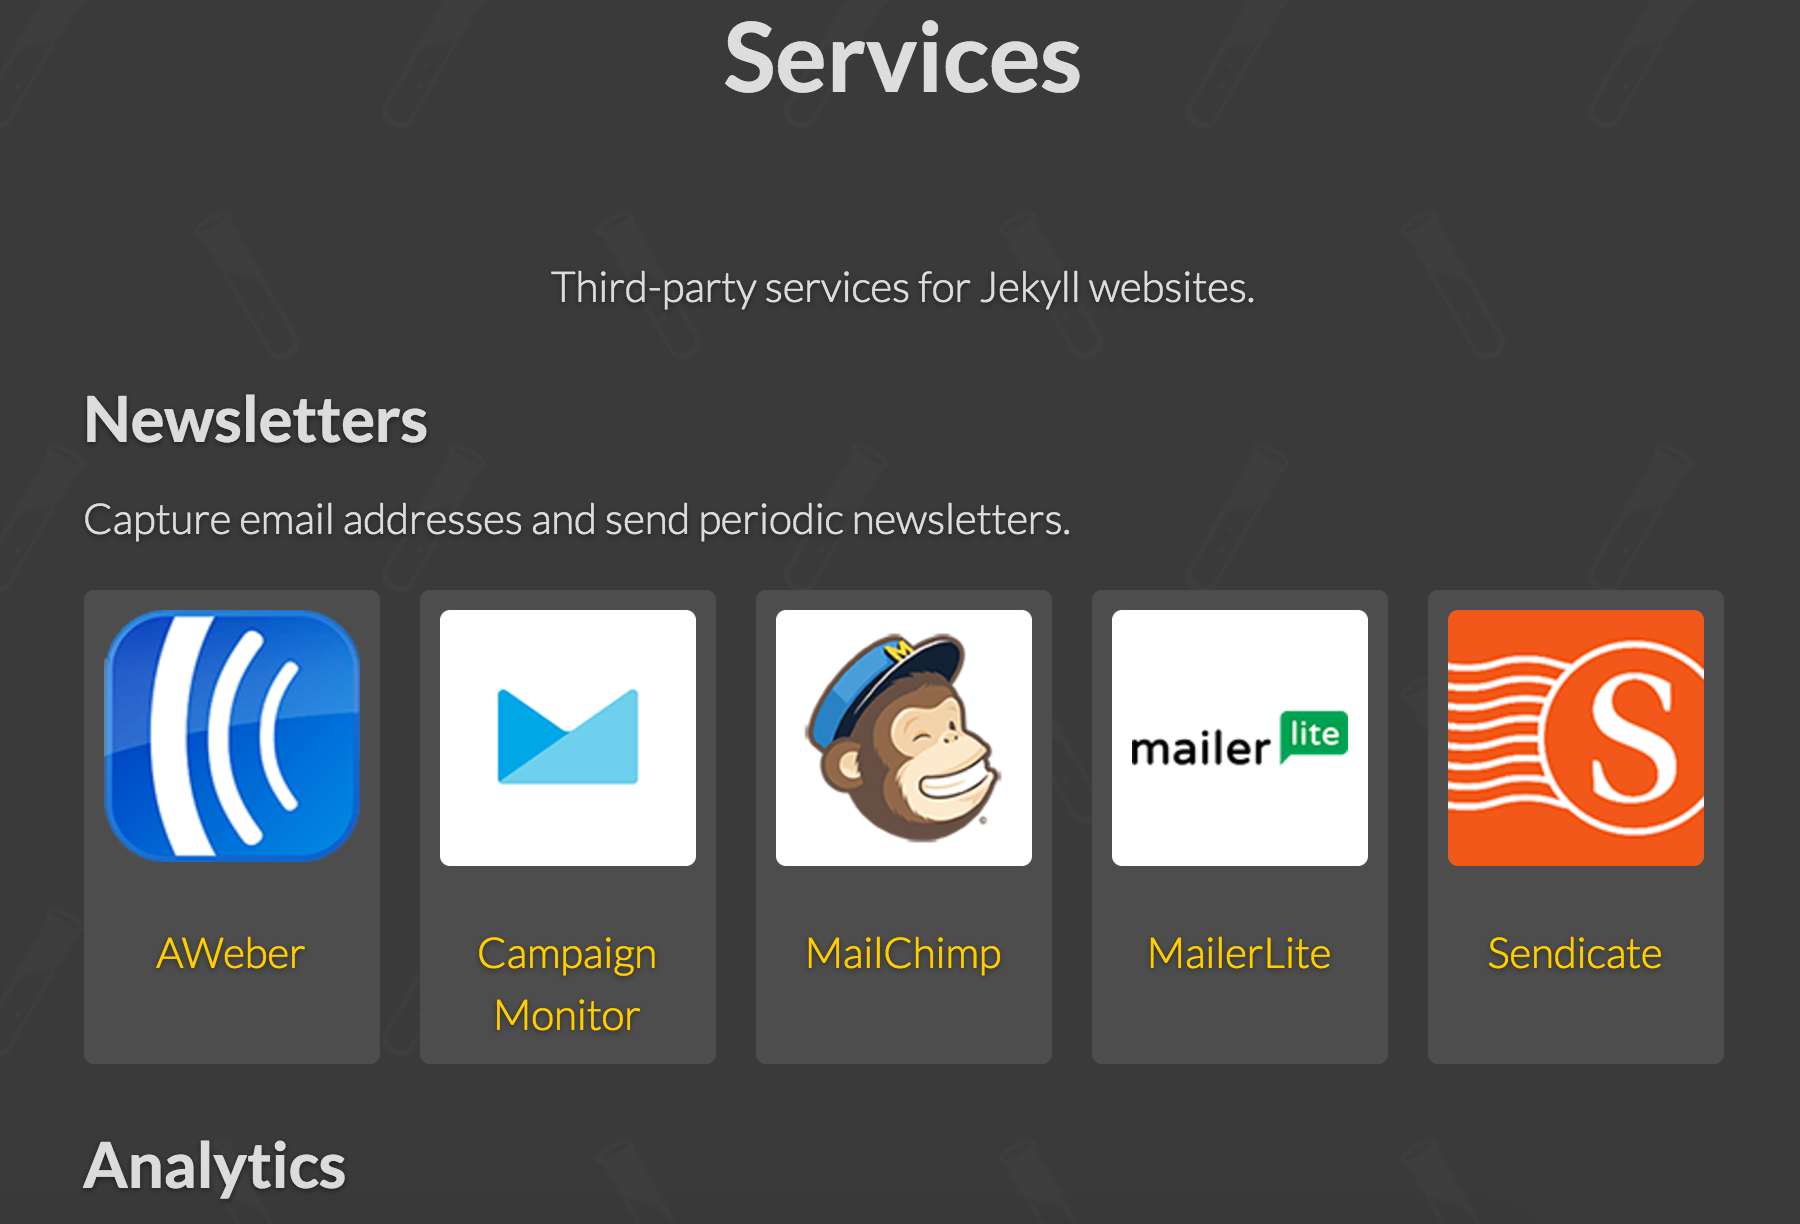 Many sites pull in all the services they need through external APIs